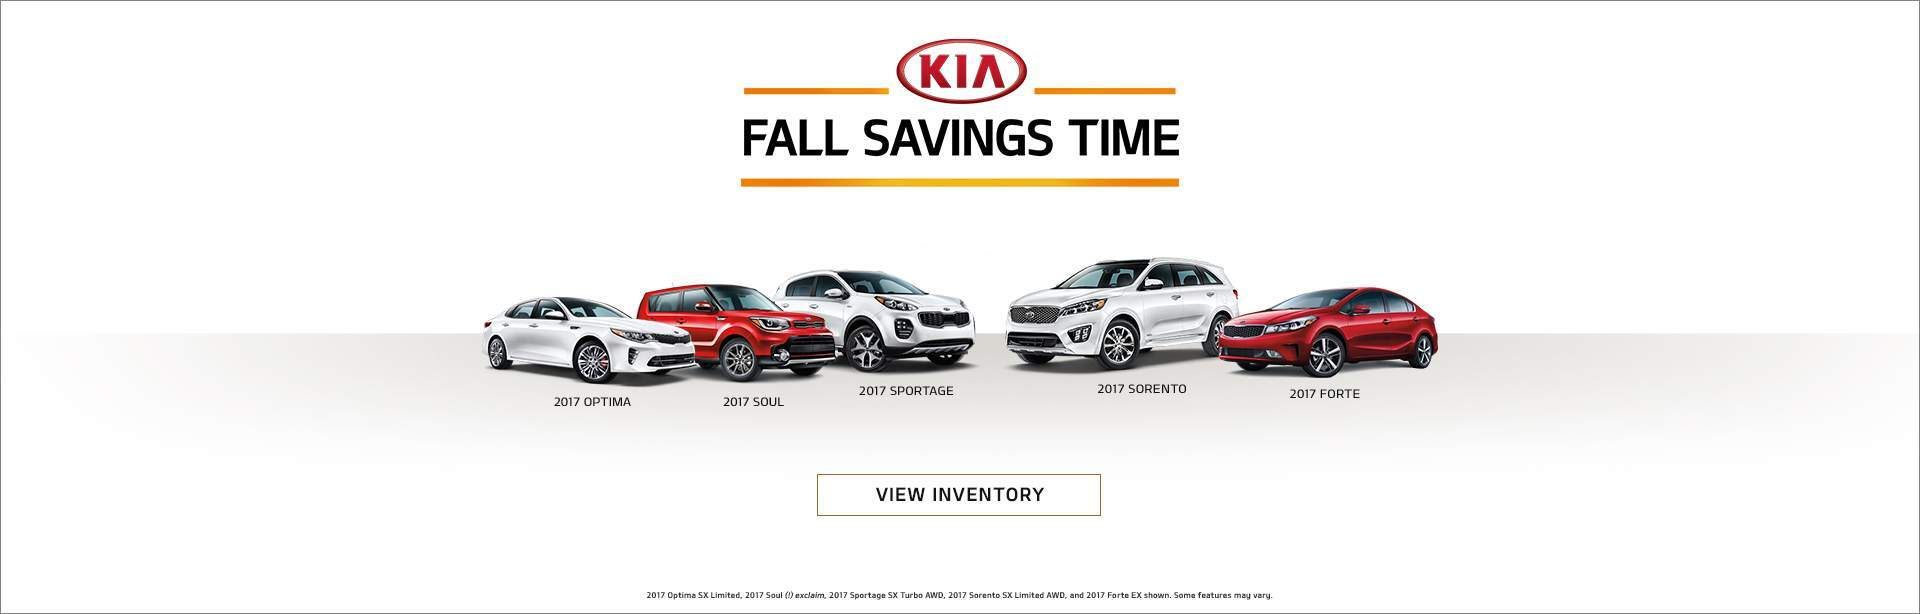 Fall Savings Time